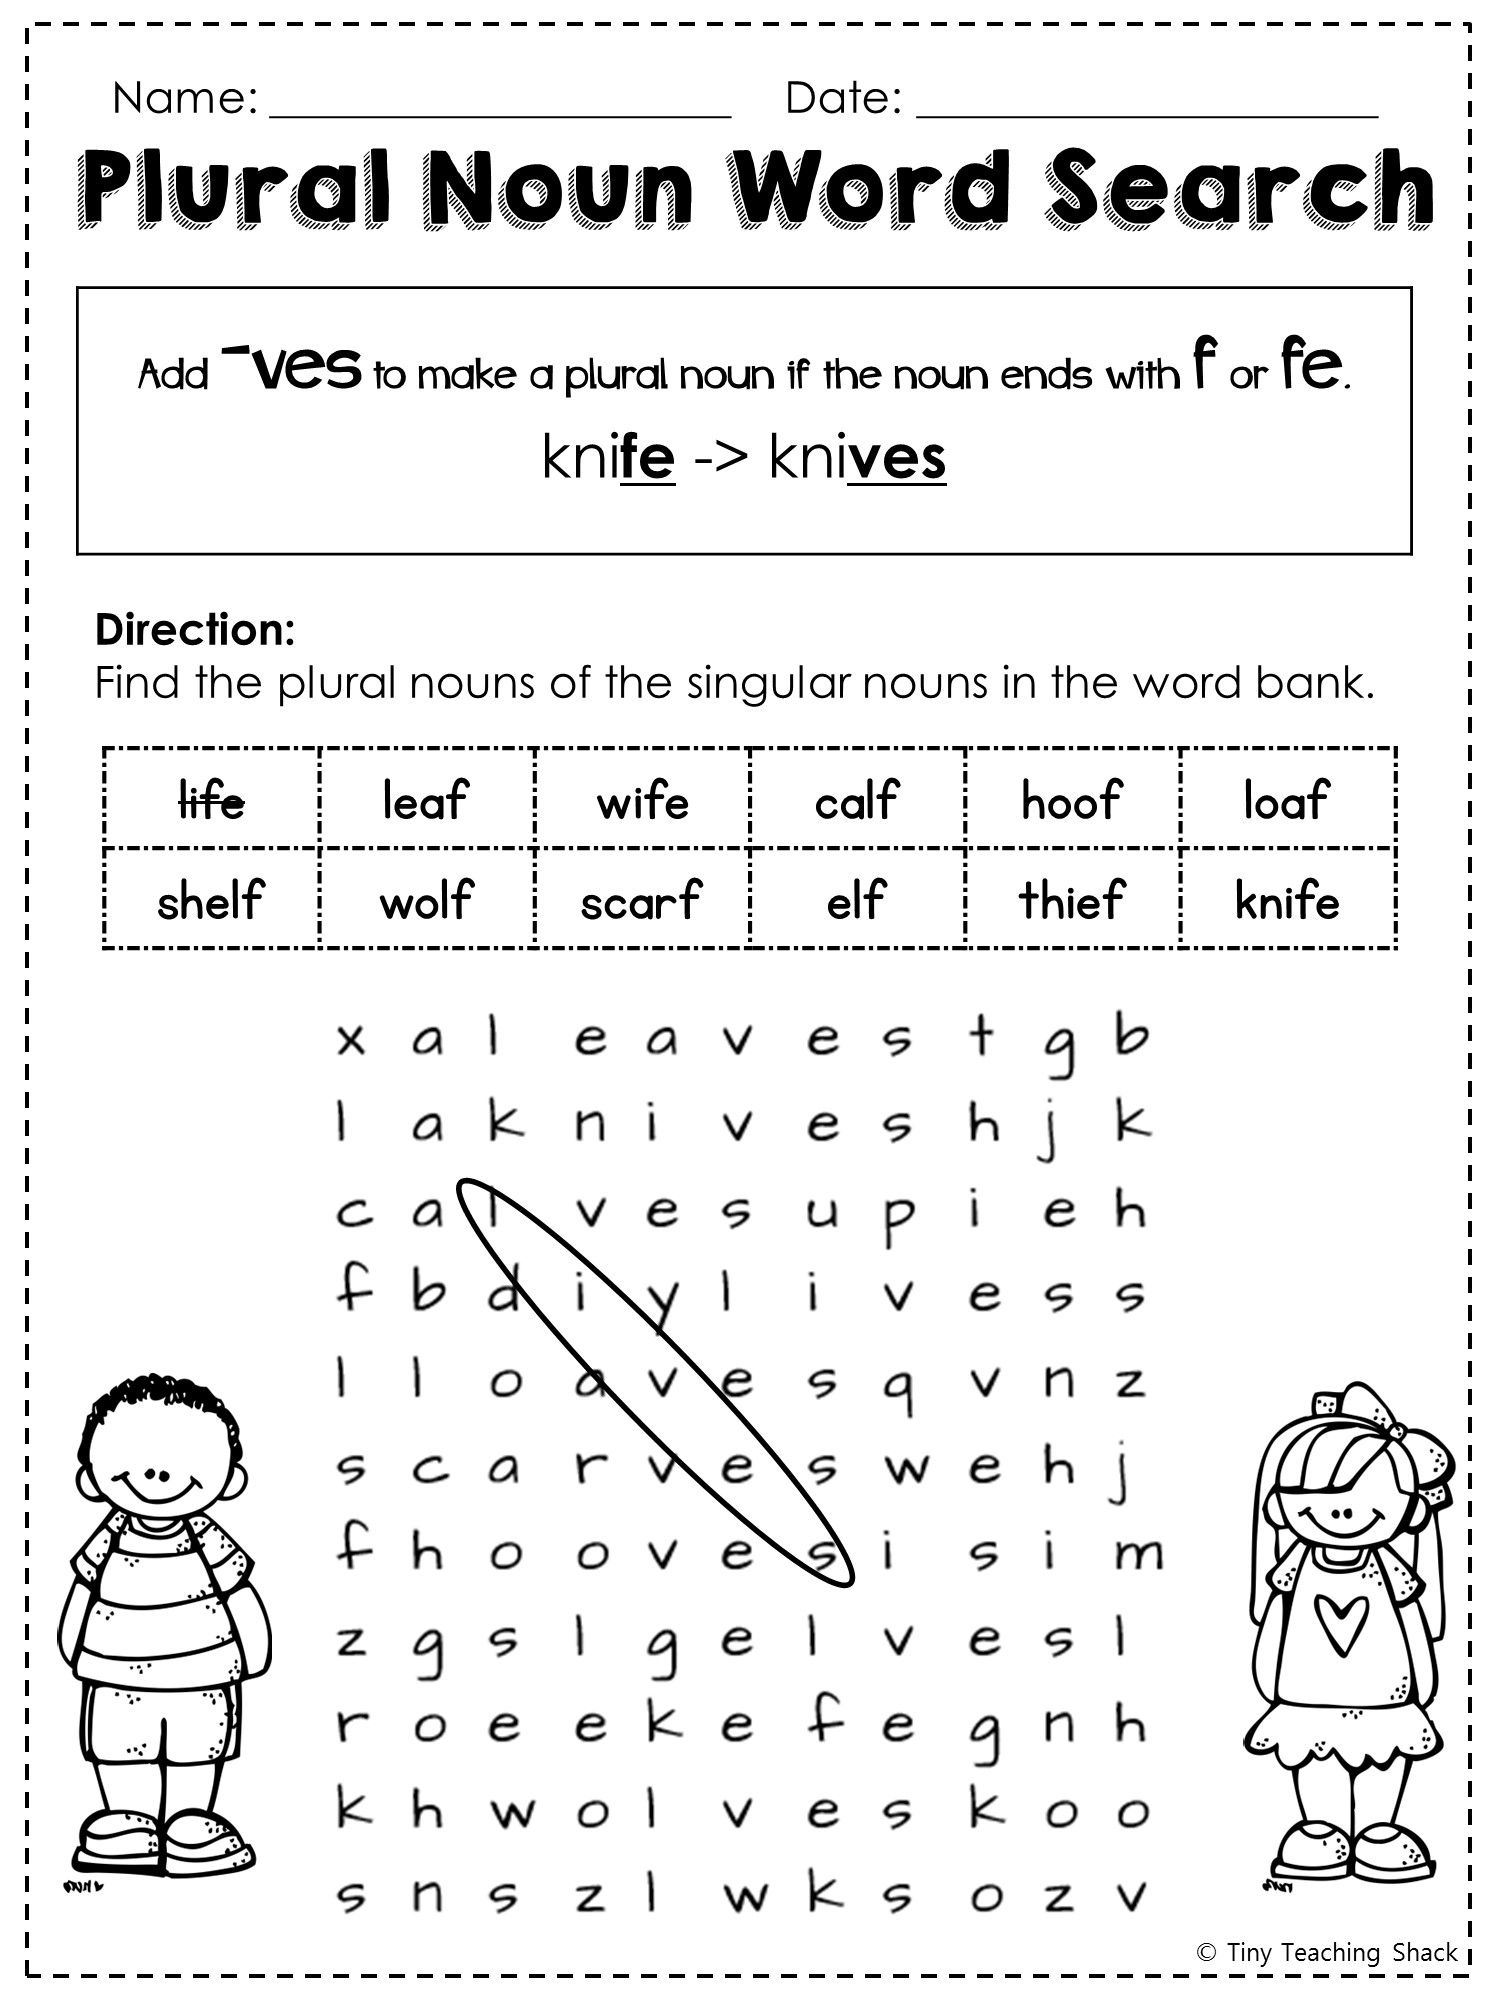 FREE irregular plural noun word search …   Nouns and verbs [ 2000 x 1500 Pixel ]